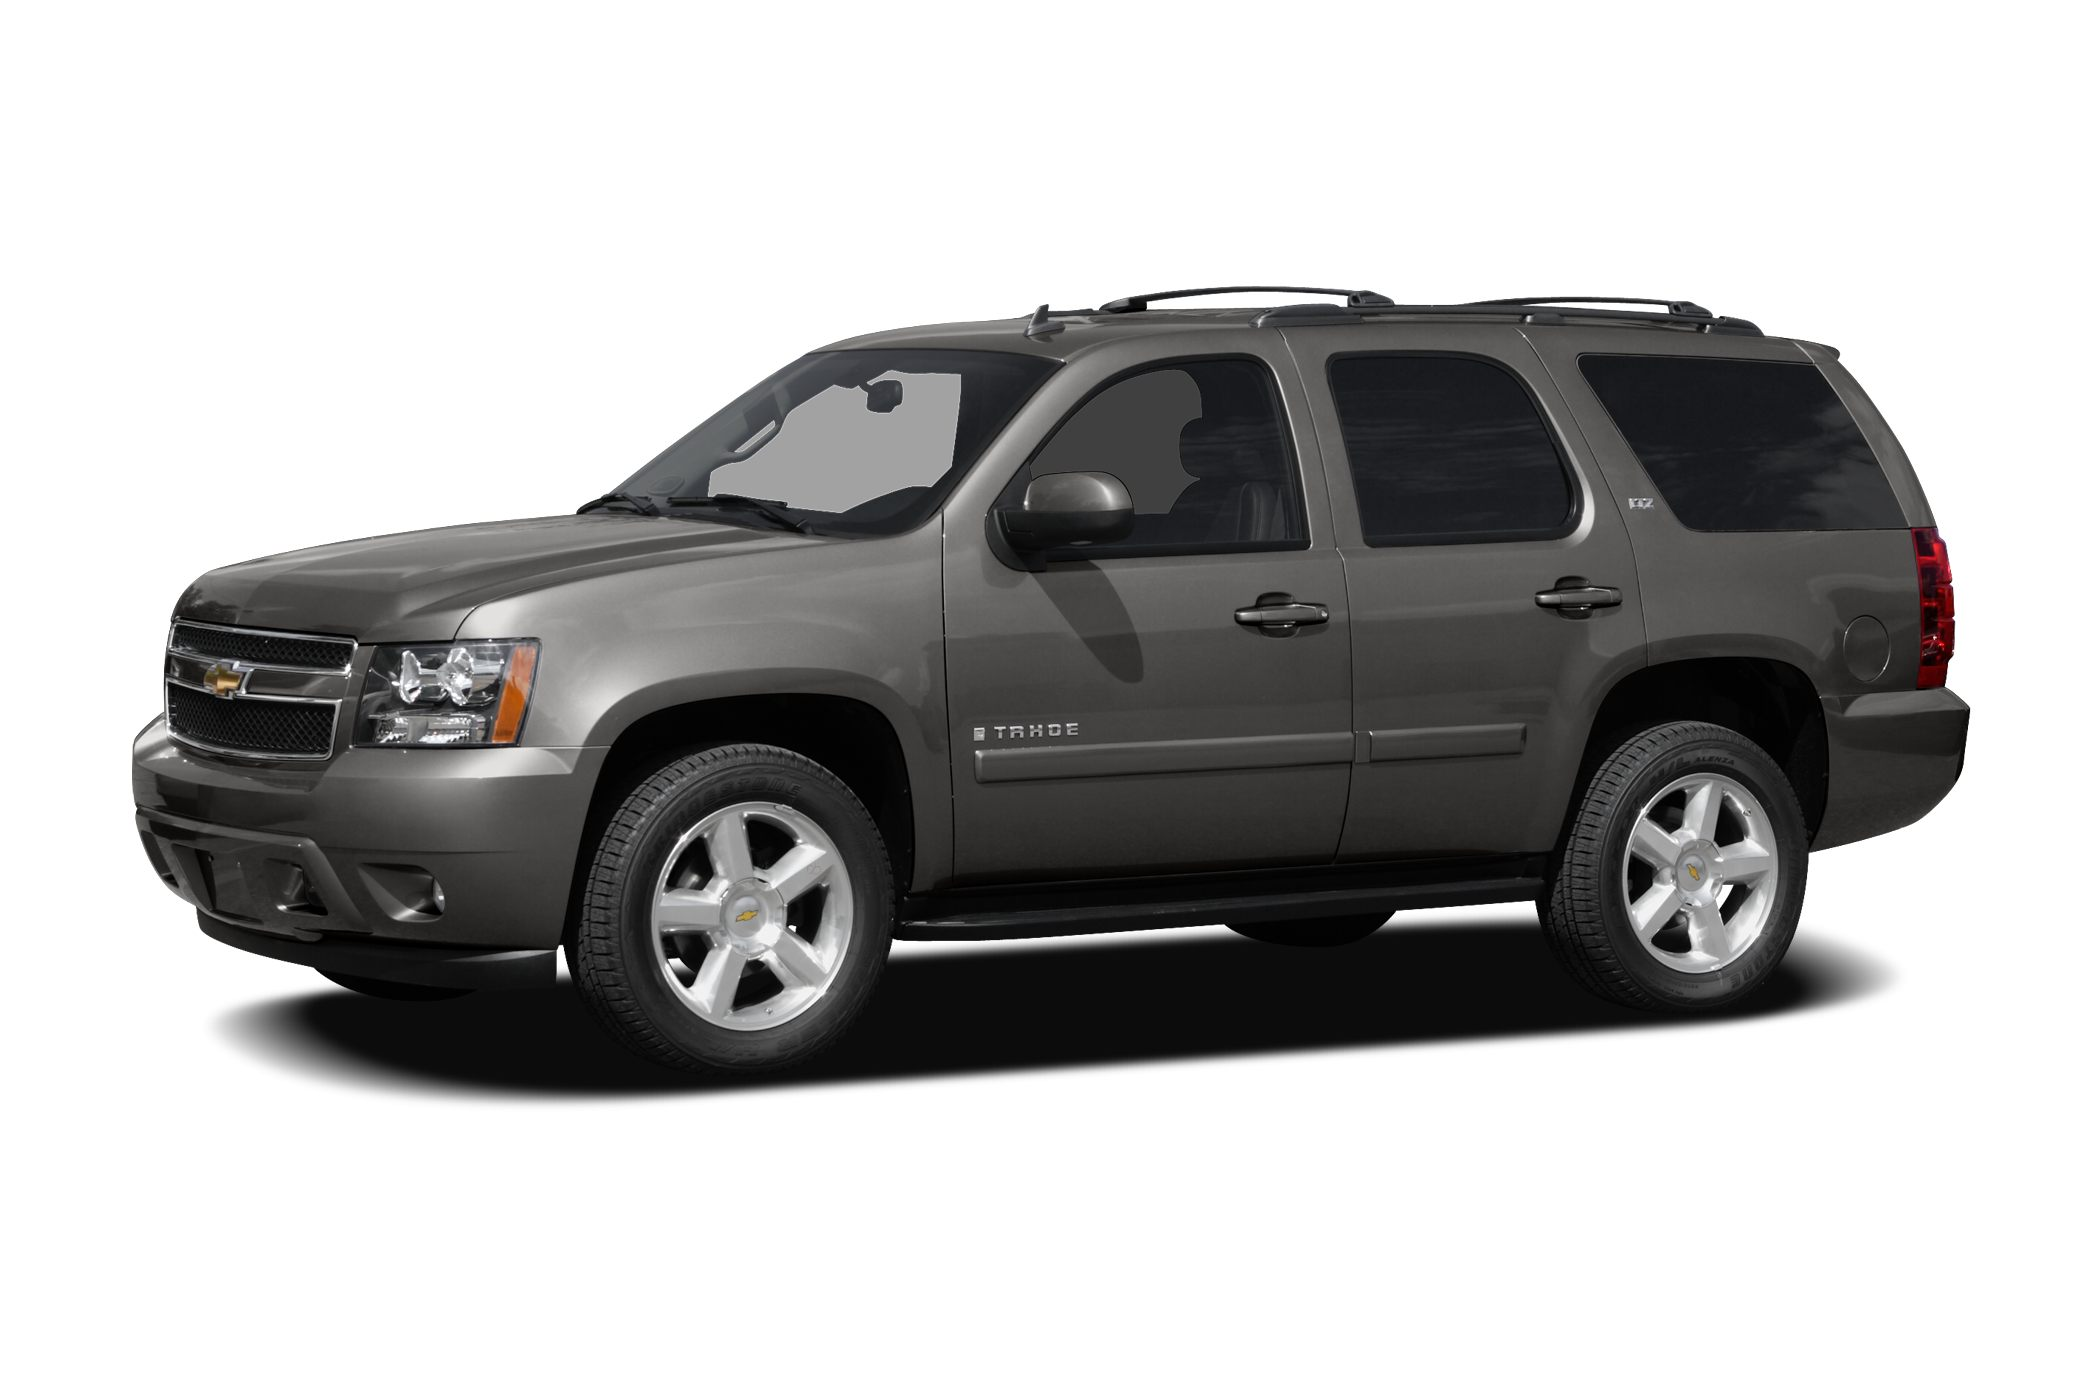 2007 Chevrolet Tahoe LS Excellent Condition Edmunds Consumers Most Wanted SUV Under 45000 Run